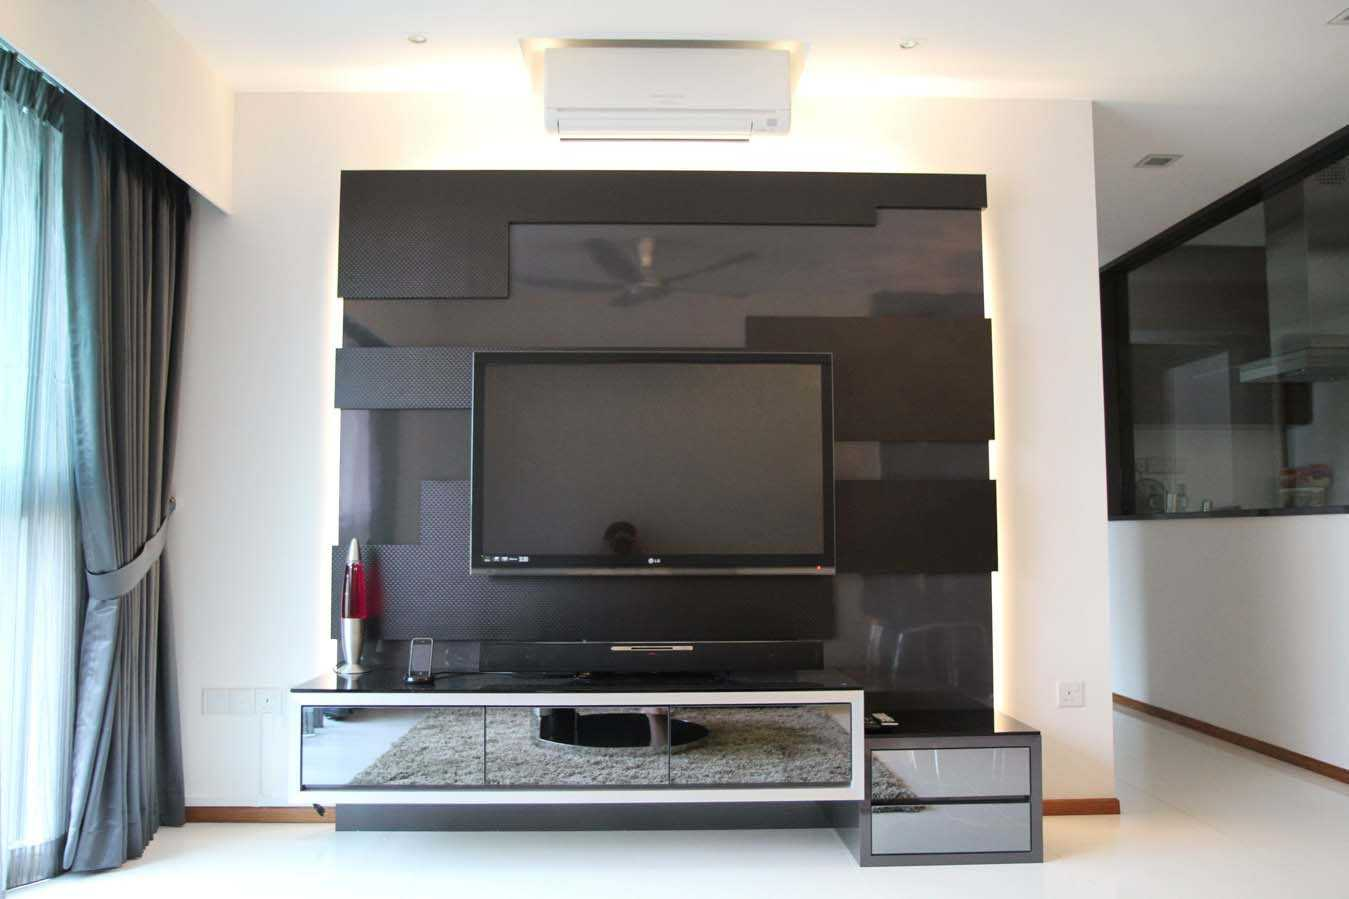 20 modern tv unit design ideas for bedroom living room. Black Bedroom Furniture Sets. Home Design Ideas